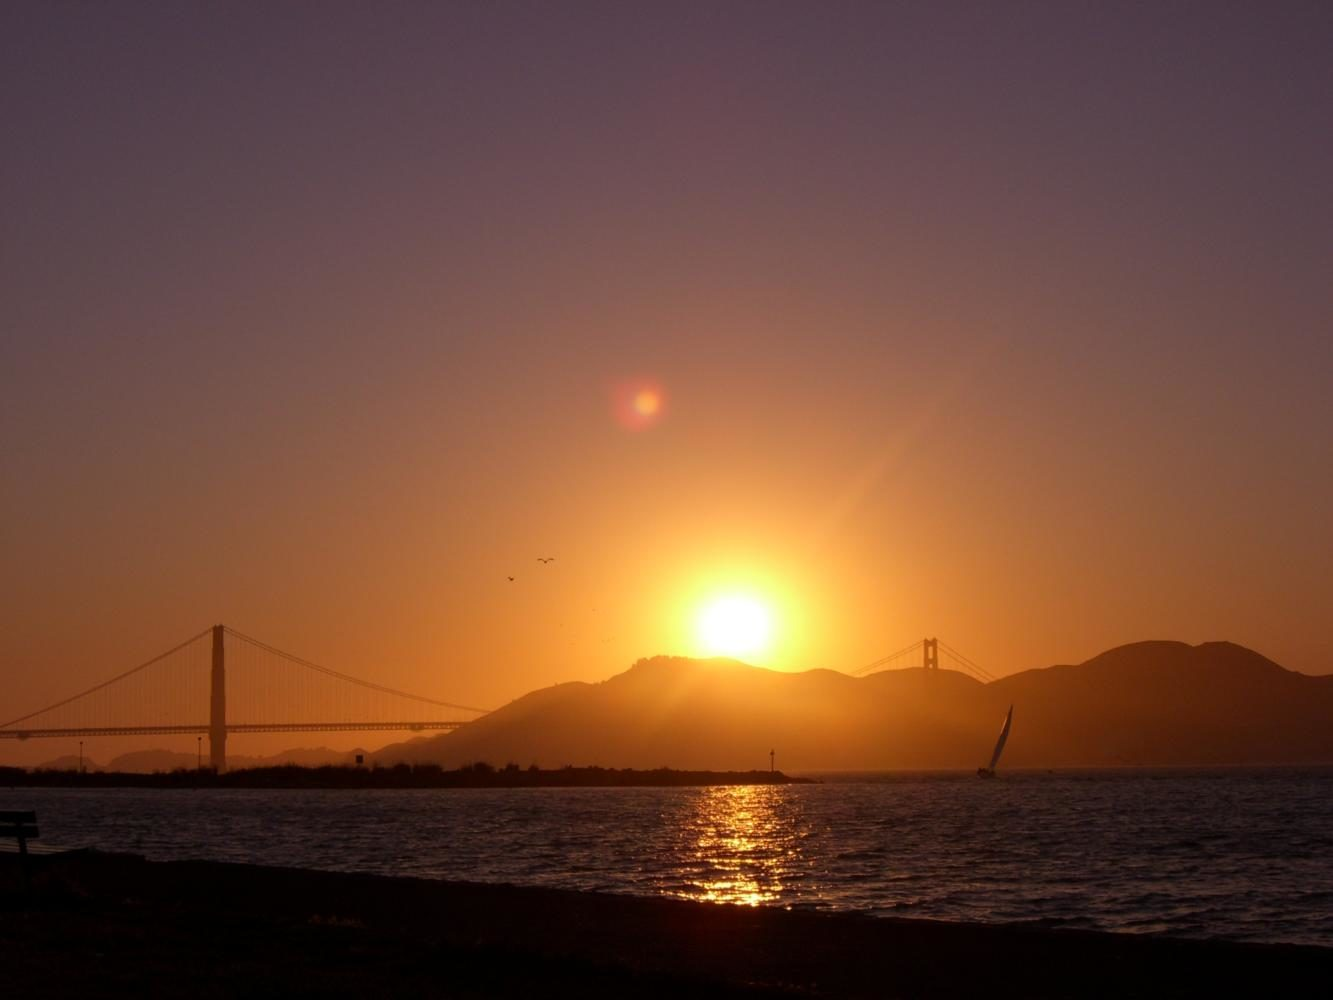 As+the+Bay+Area+experienced+extreme+heat%2C+many+San+Francisco+residents+were+treated+to+fiery%2C+red+sunsets+that+occurred+as+a+result+of+the+heat.